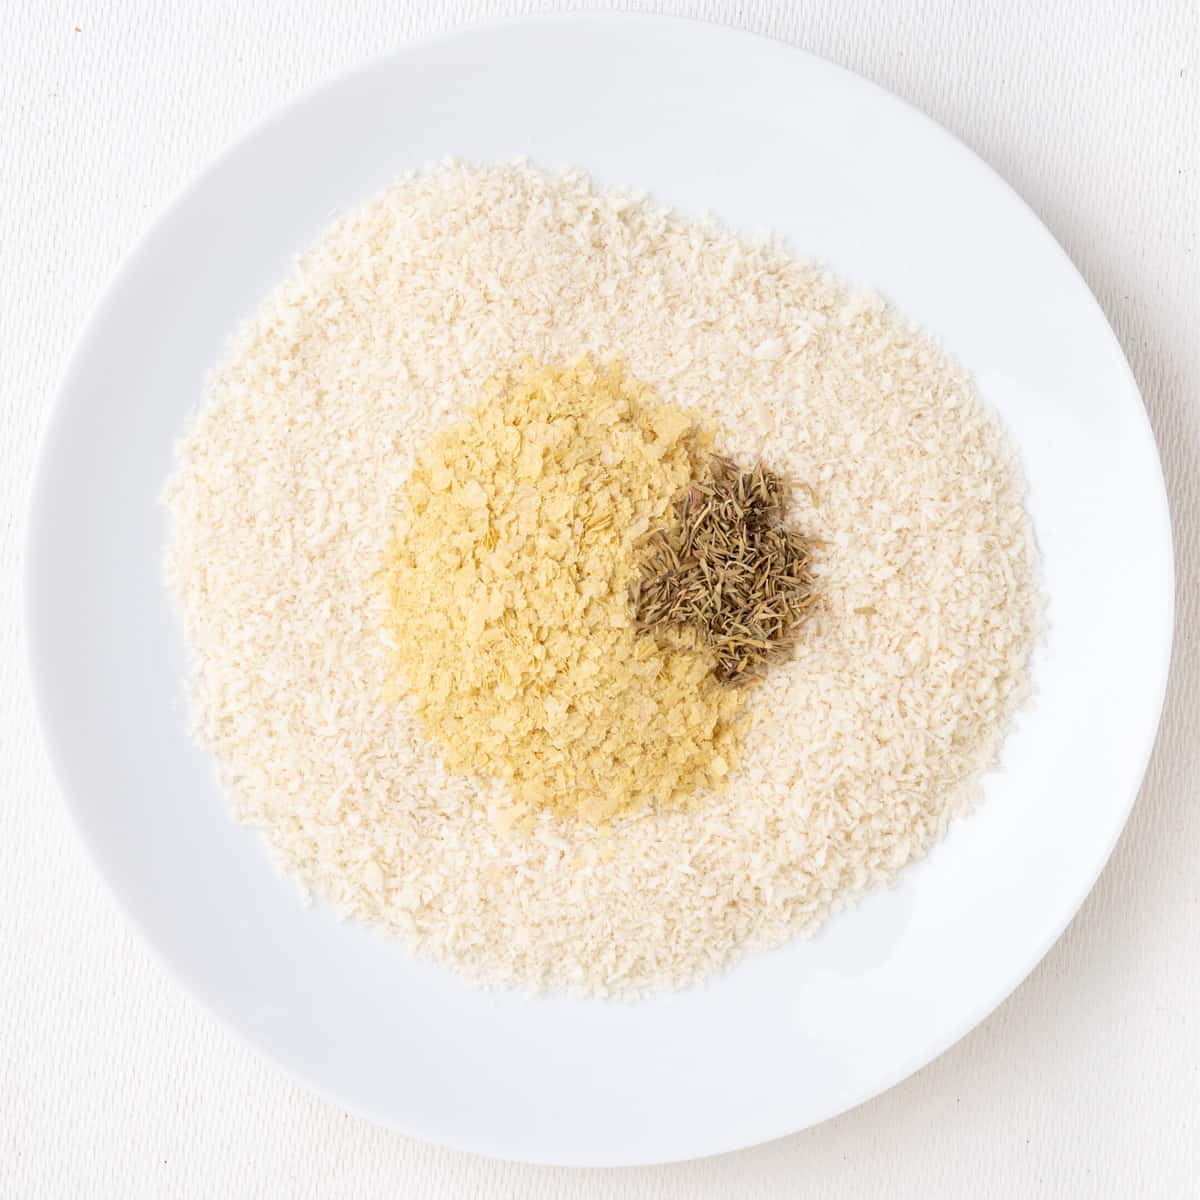 White breadcrumbs with nutritional yeast flakes and dried thyme on a shallow plate.